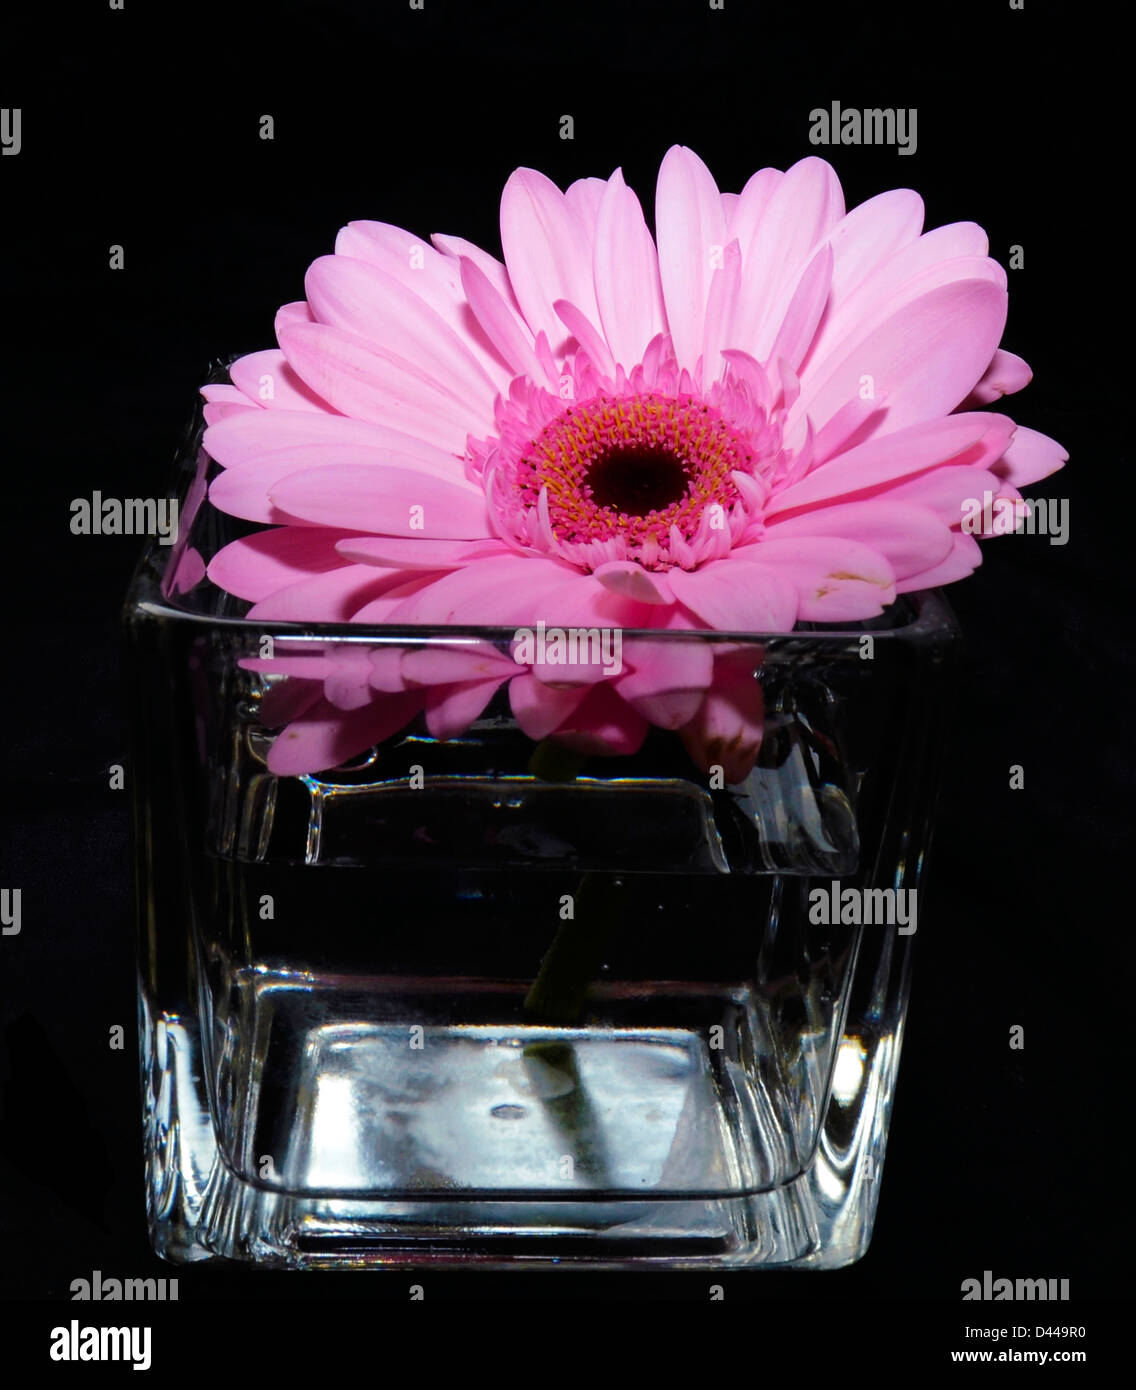 Flower Vase Stock Photos Flower Vase Stock Images Alamy